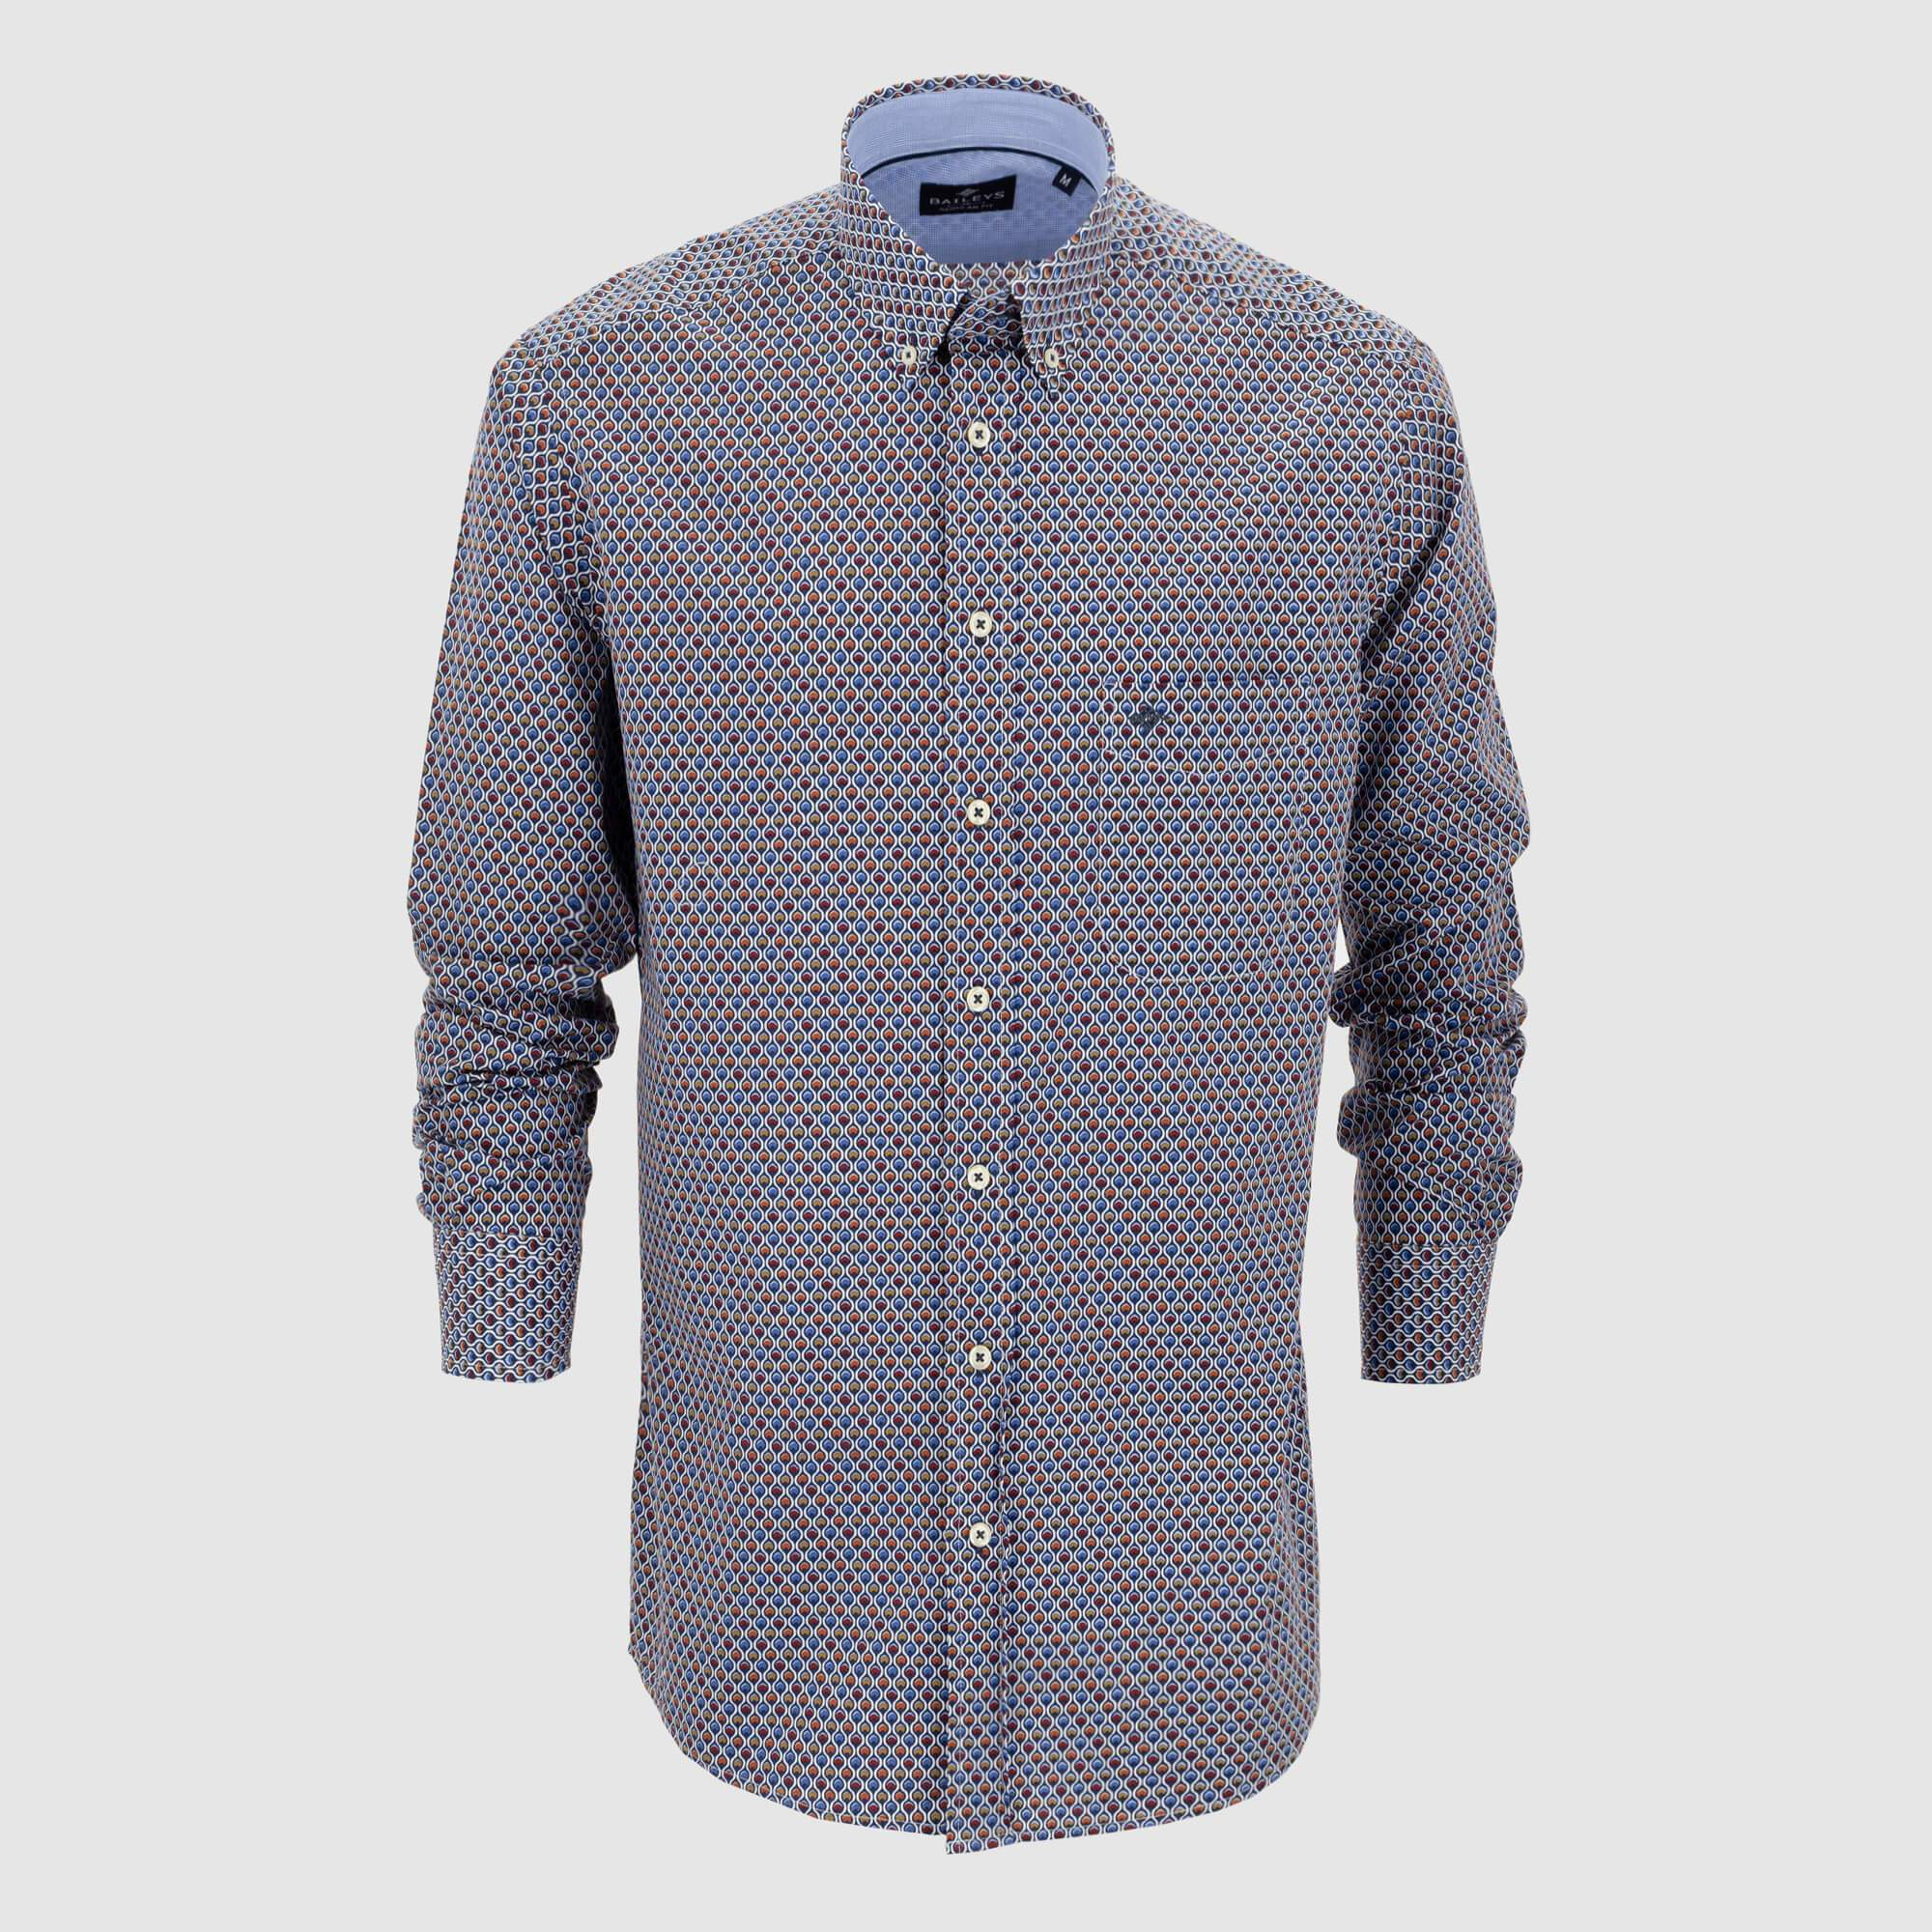 Camisa estampada regular fit 927689